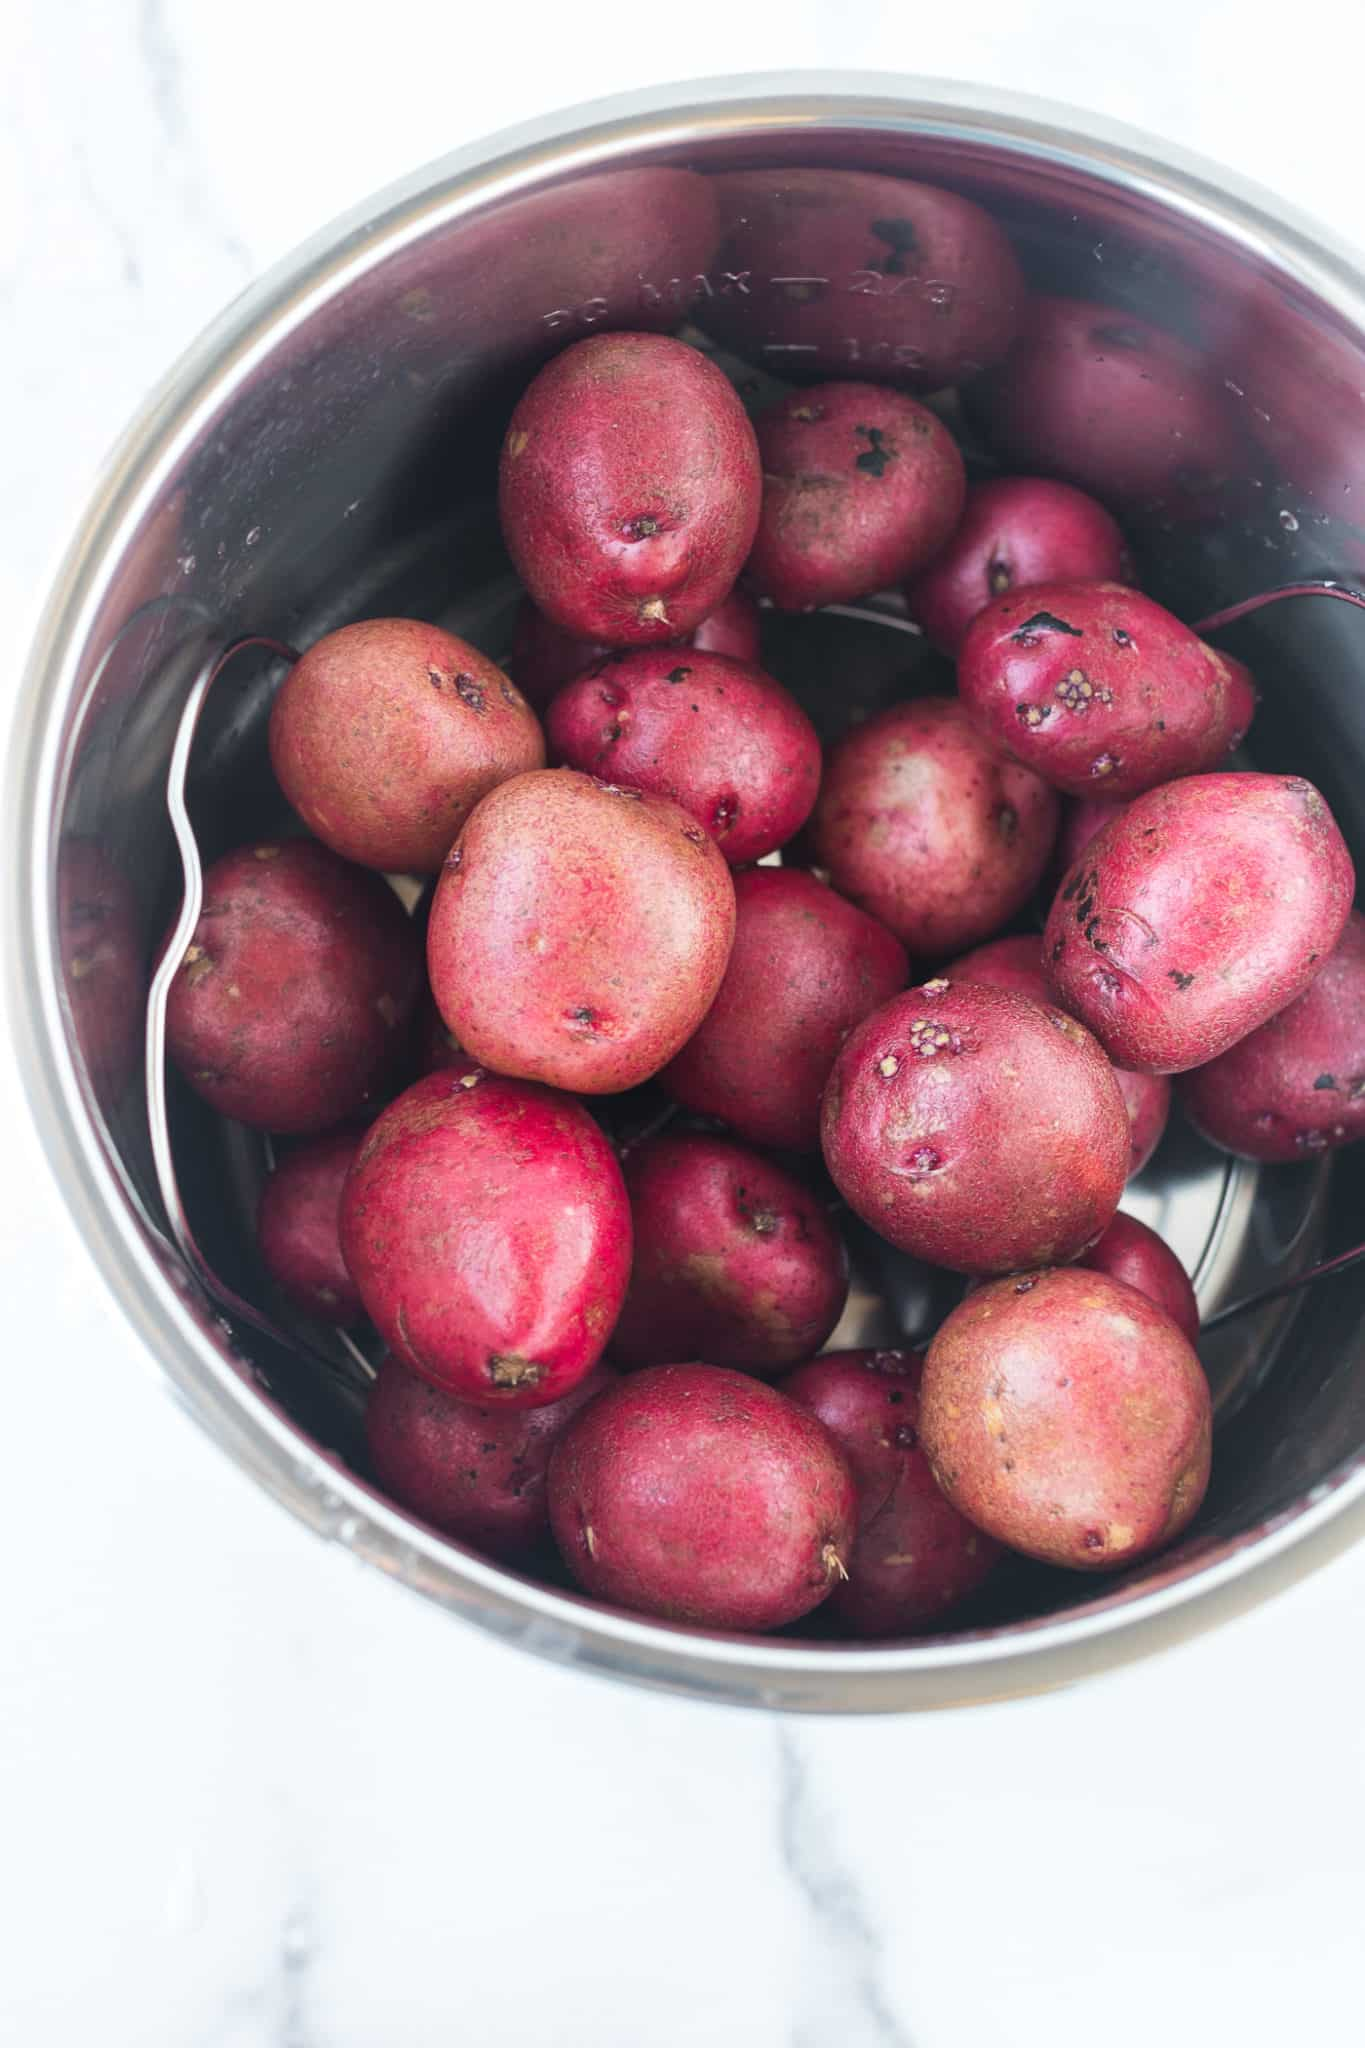 red potatoes cooked in an instant pot pressure cooker